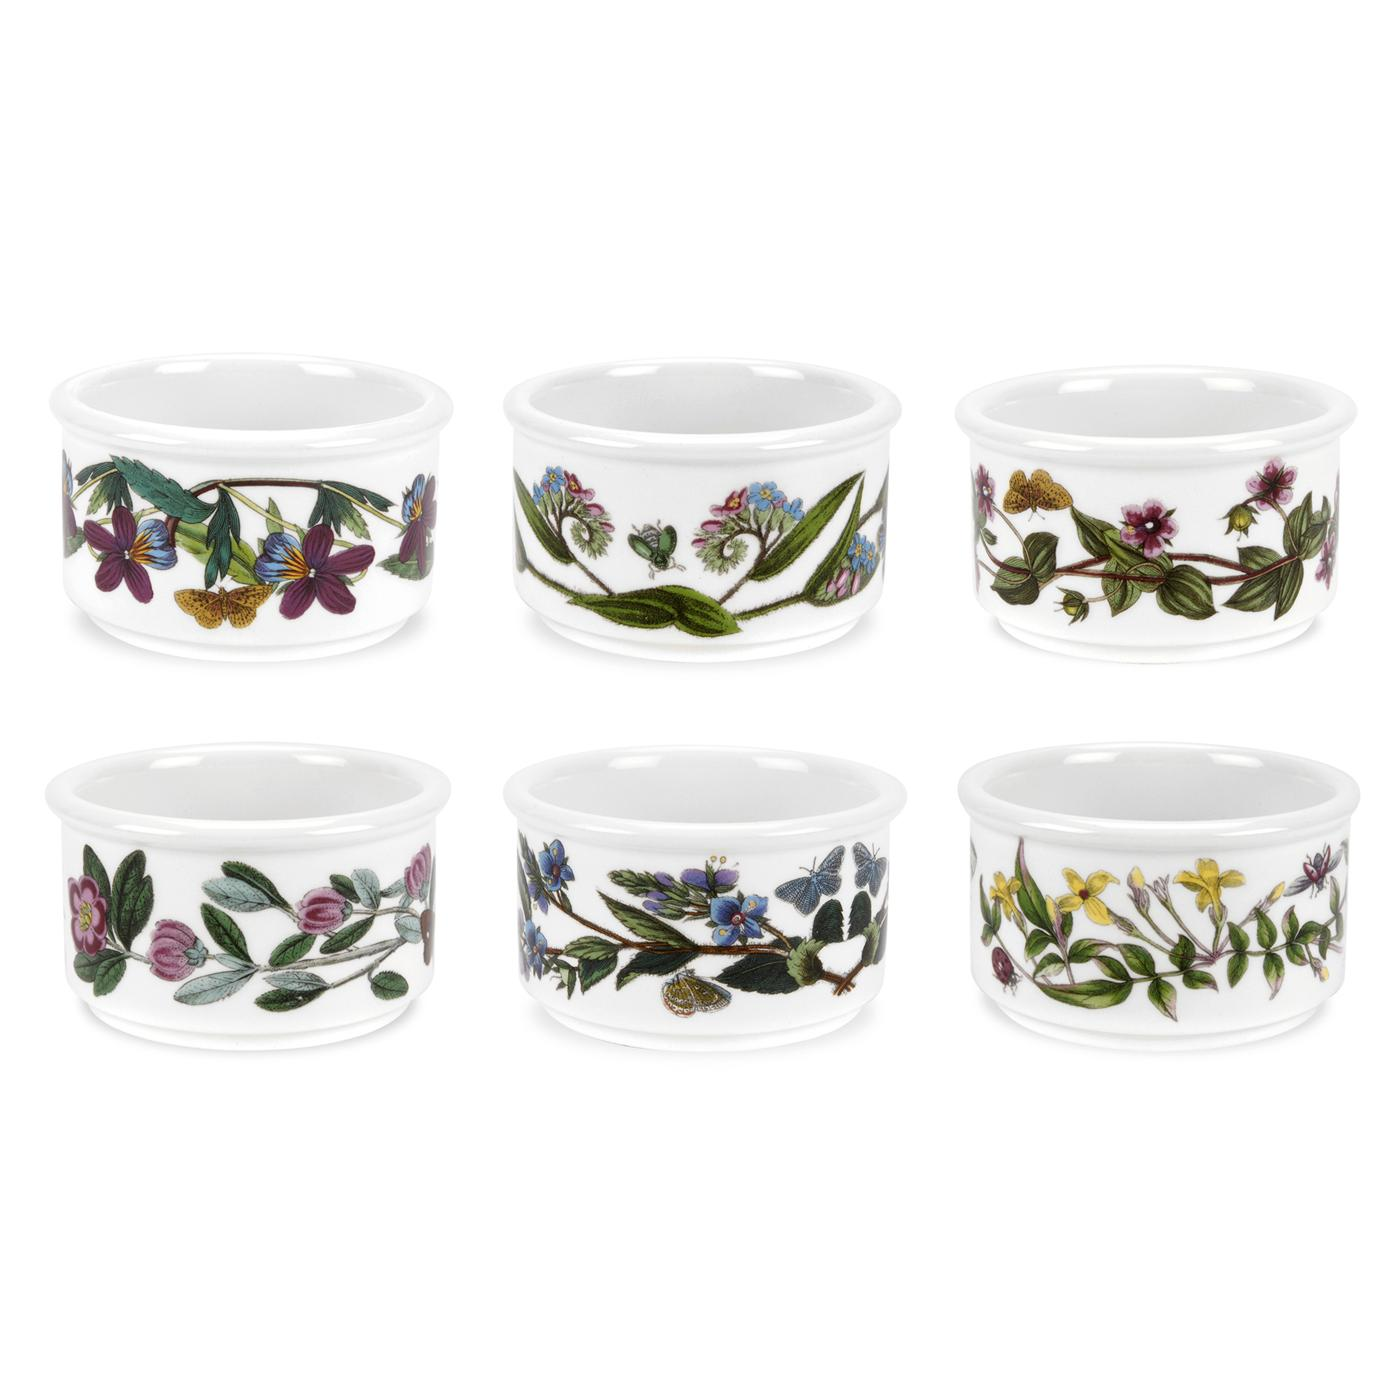 Botanic Garden Stackable Ramekins Set of 6 (Assorted Motifs) image number 0